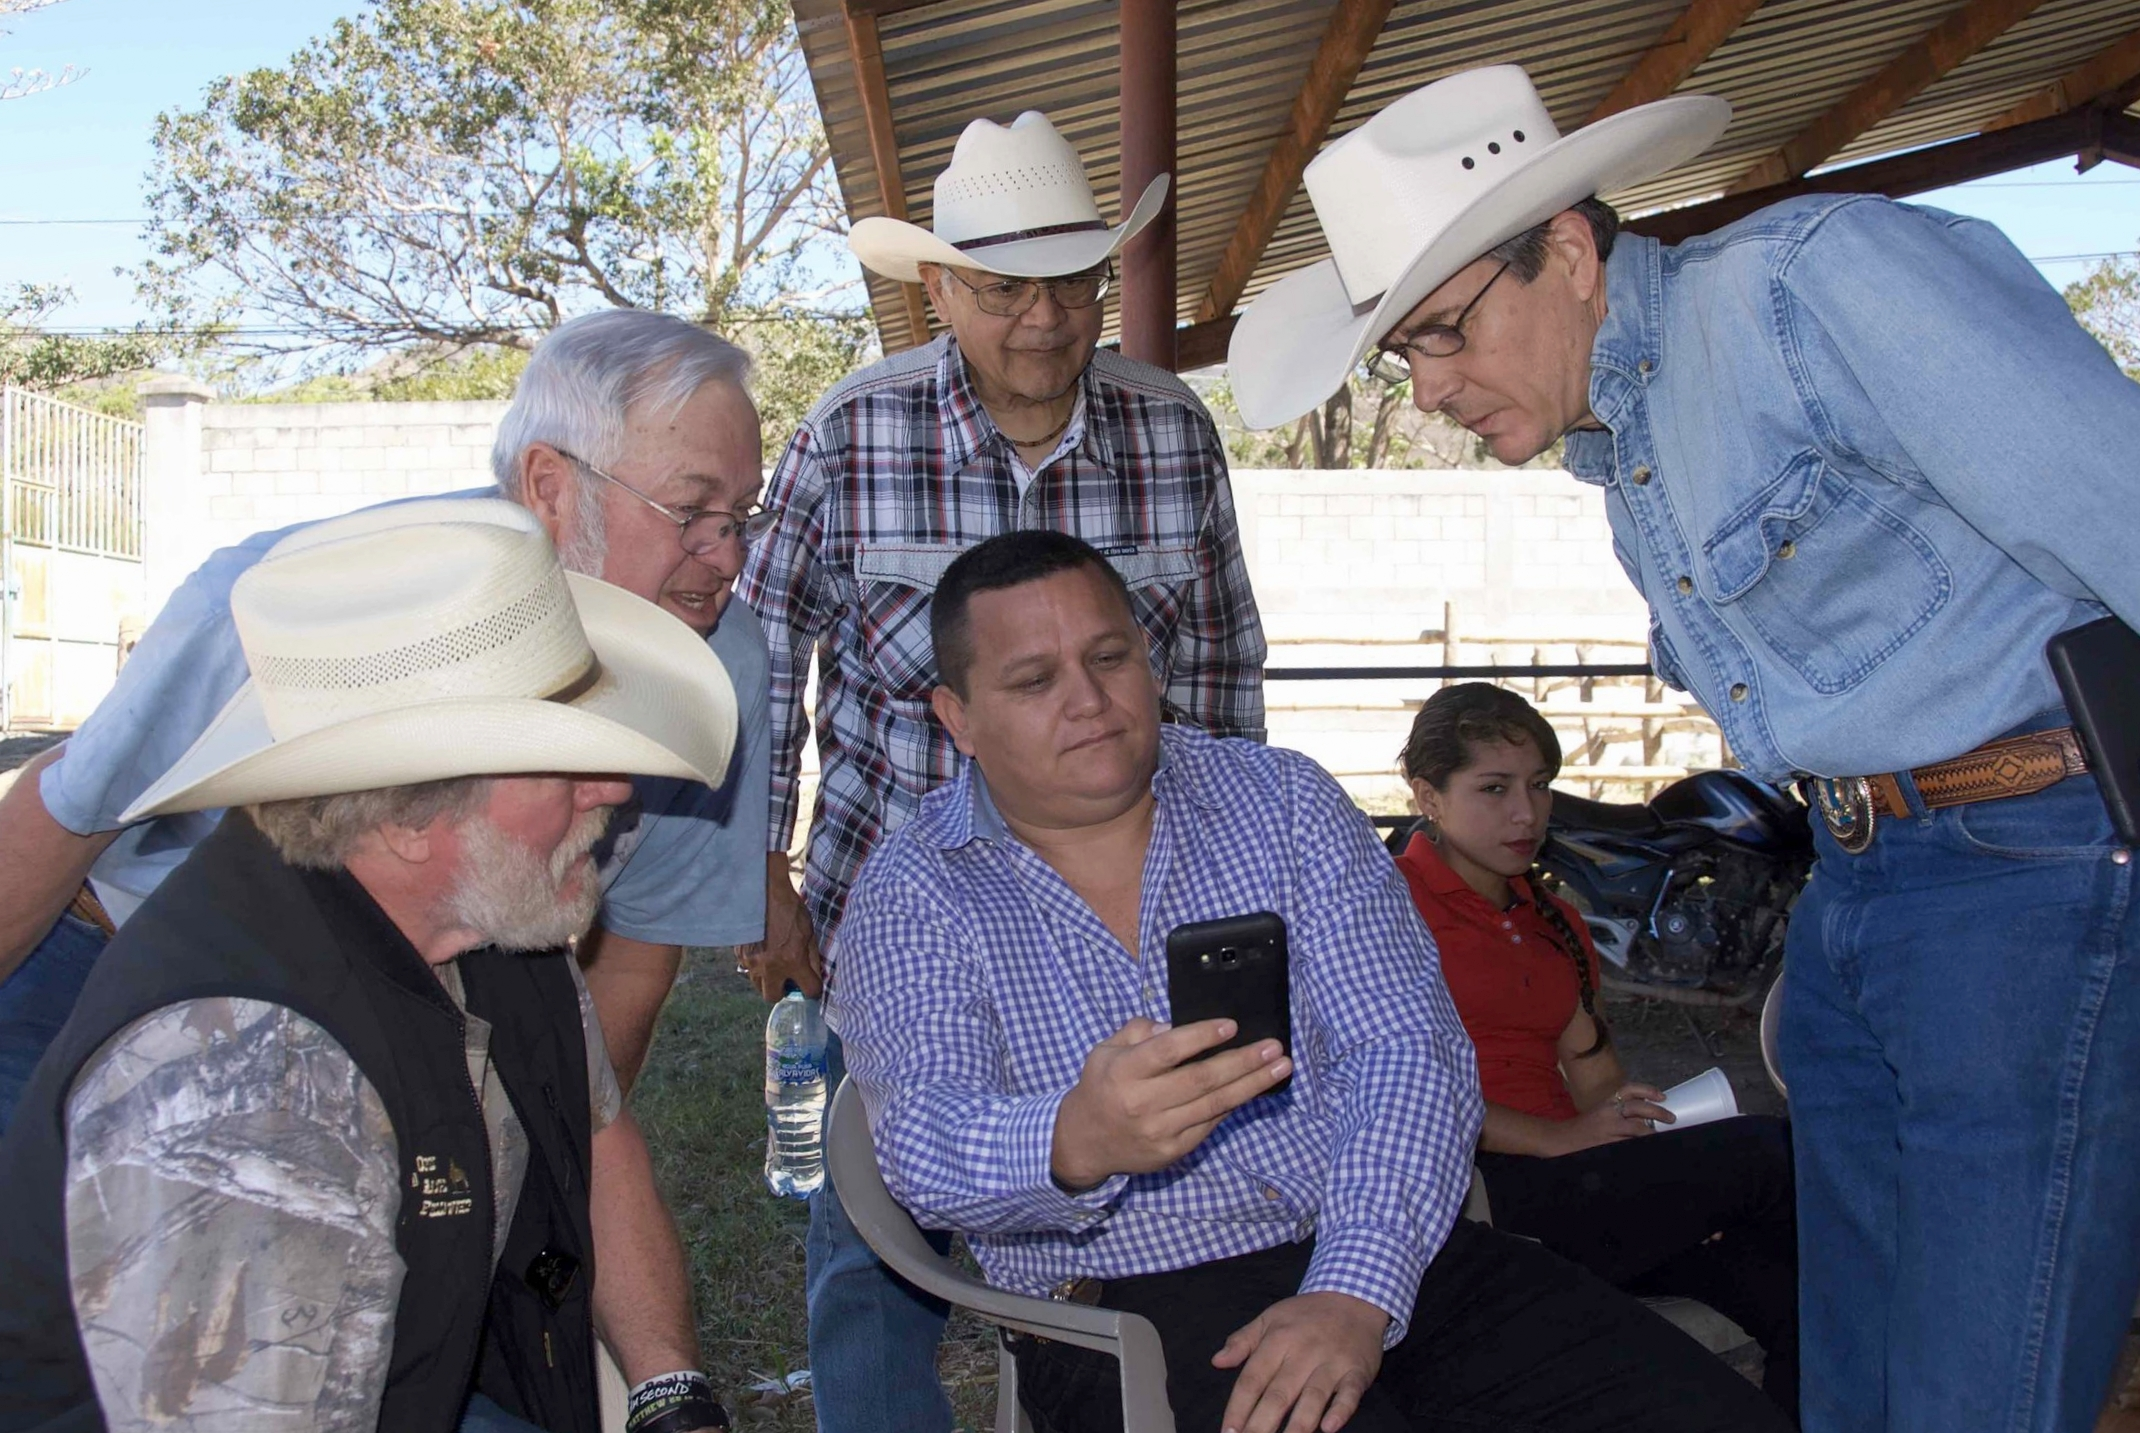 US cowboys enjoy seeing personal horse photos on the phone of a Guatemalan cowboy (and town lawyer) before a dairy co-op tour and lunch meeting with a womens' group.